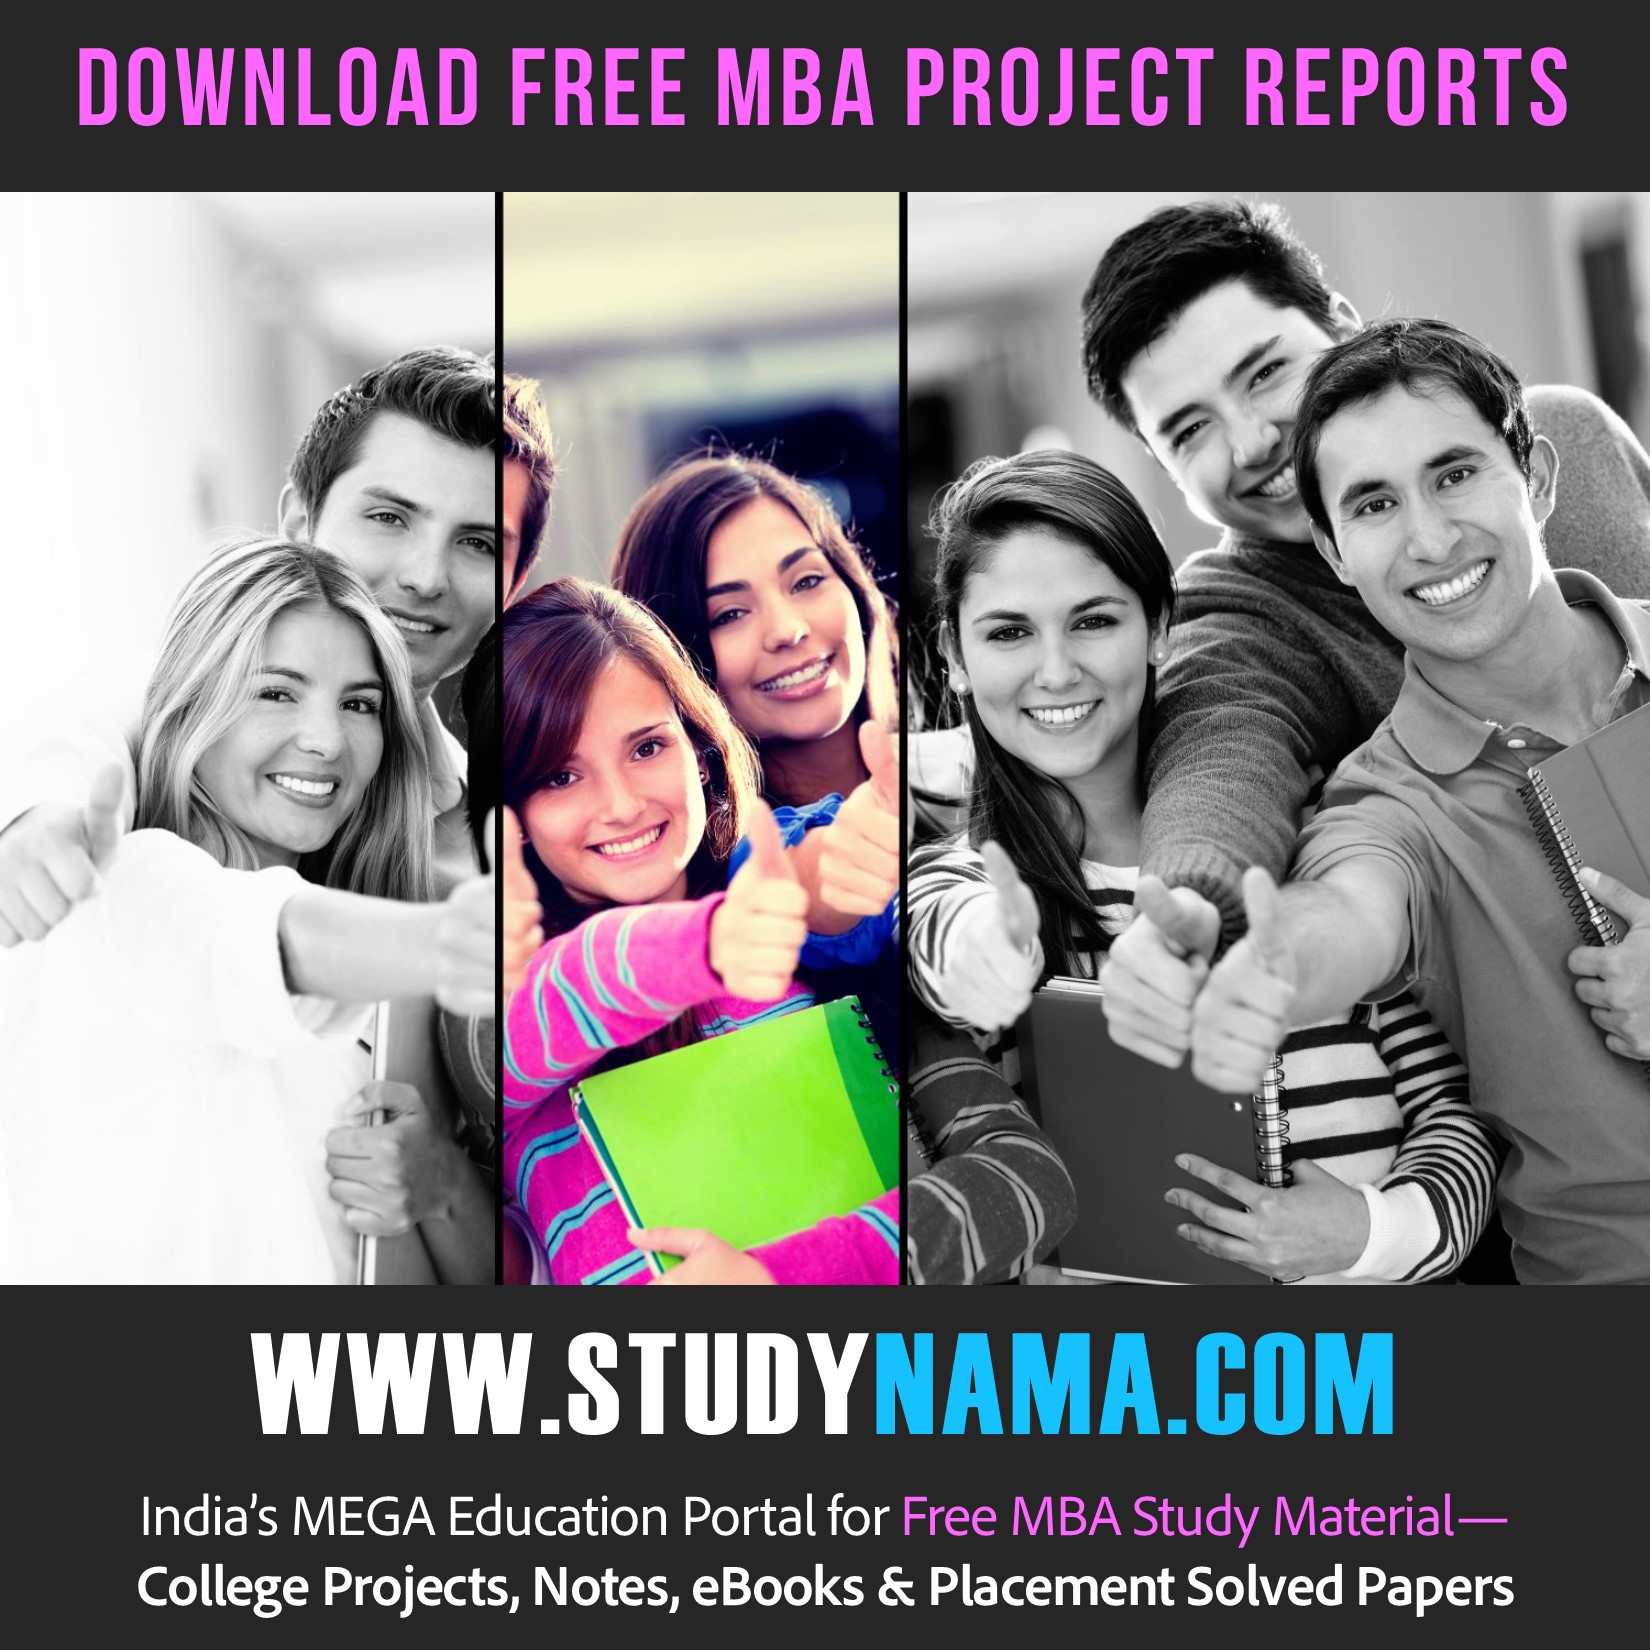 MBA Marketing Projects, Training Reports, Presentations